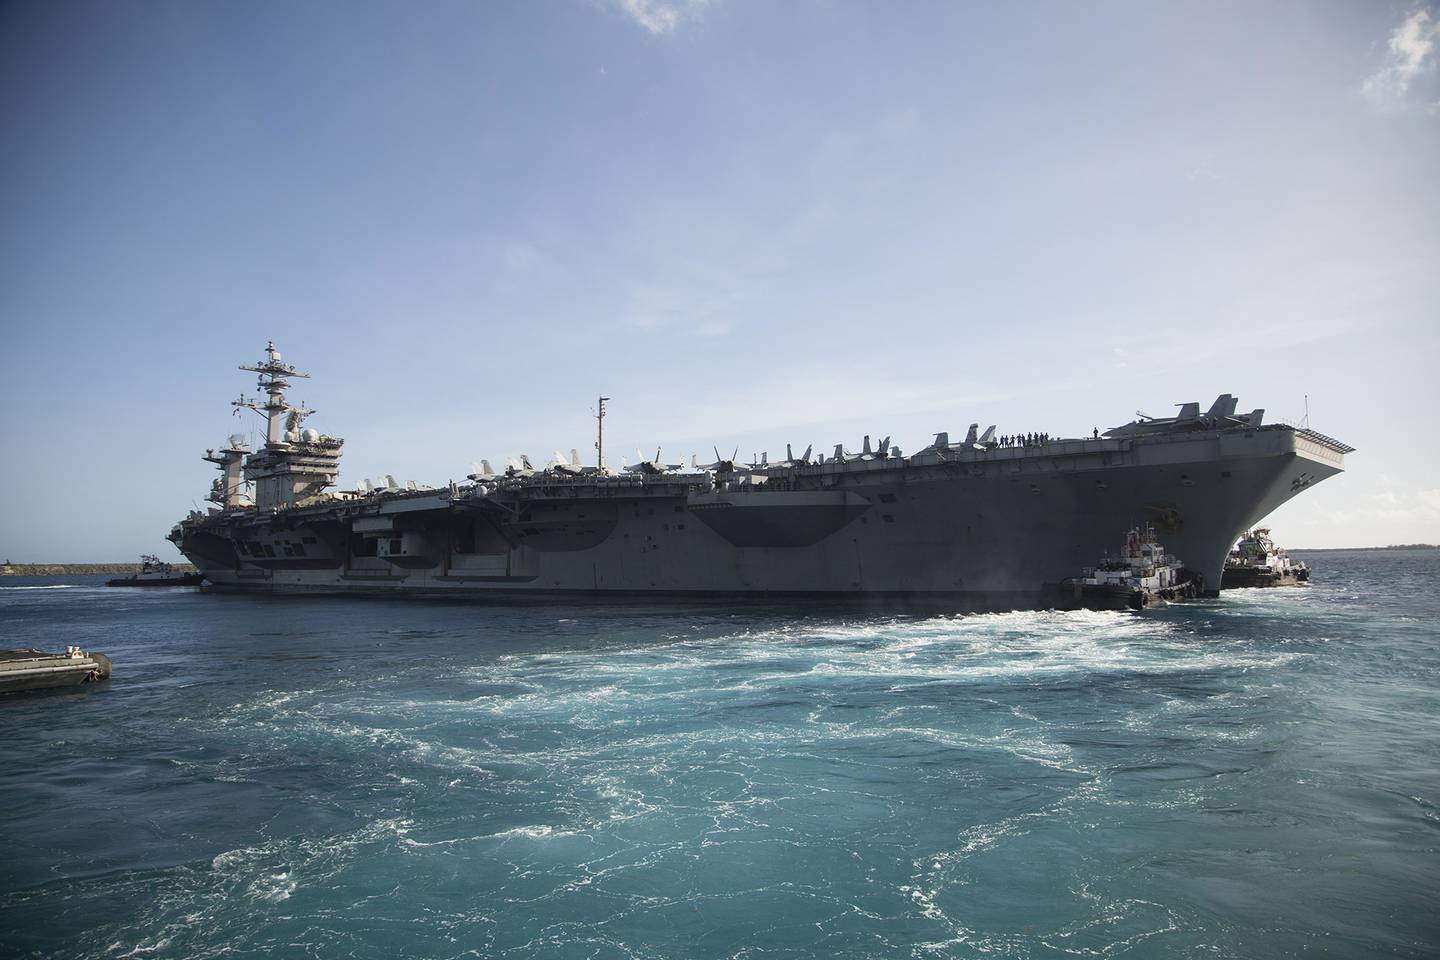 The aircraft carrier USS Theodore Roosevelt (CVN 71) departs Apra Harbor on May 21, 2020, following an extended visit to Guam in the midst of the COVID-19 global pandemic.